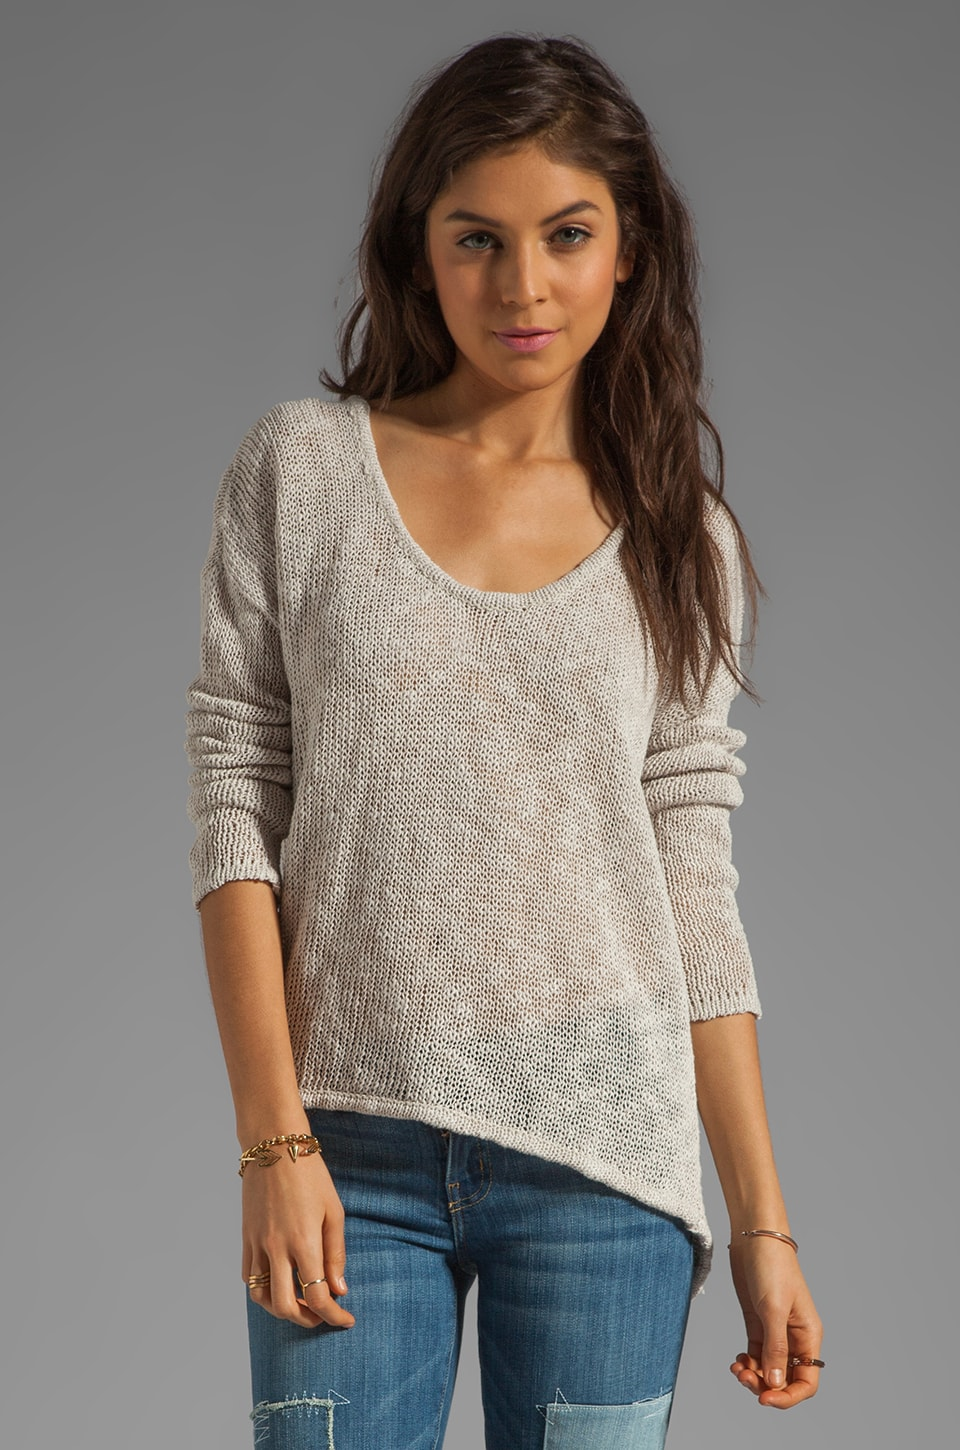 Feel the Piece Long Sleeve Hi Lo Sweater in Sand